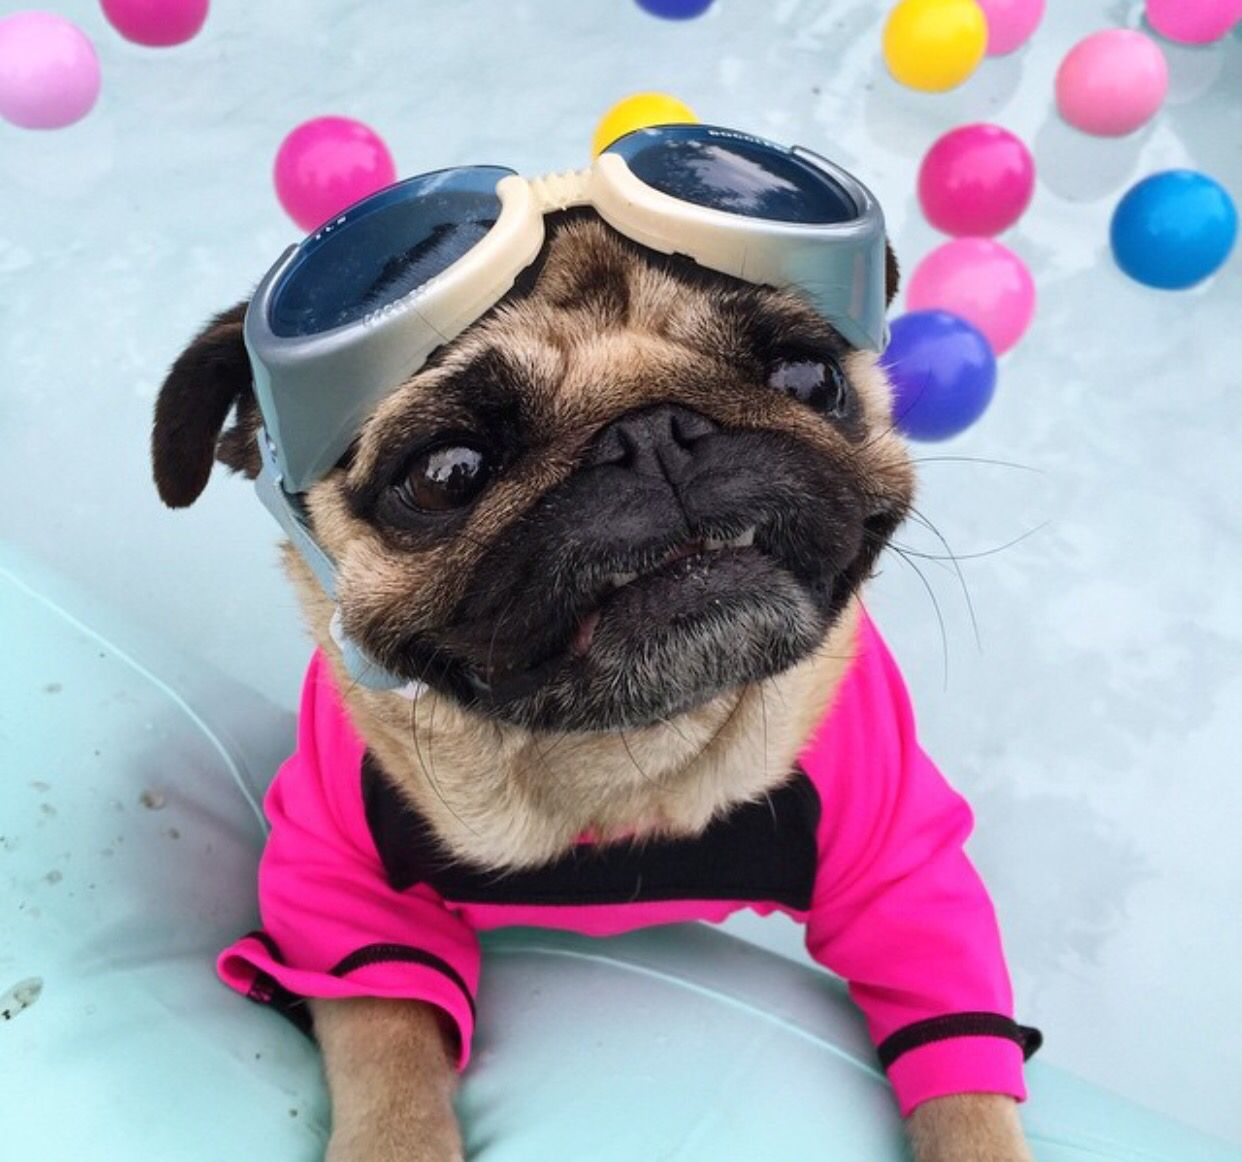 Why Are You Looking At Me Like That Oh My Pink Pug Pugs